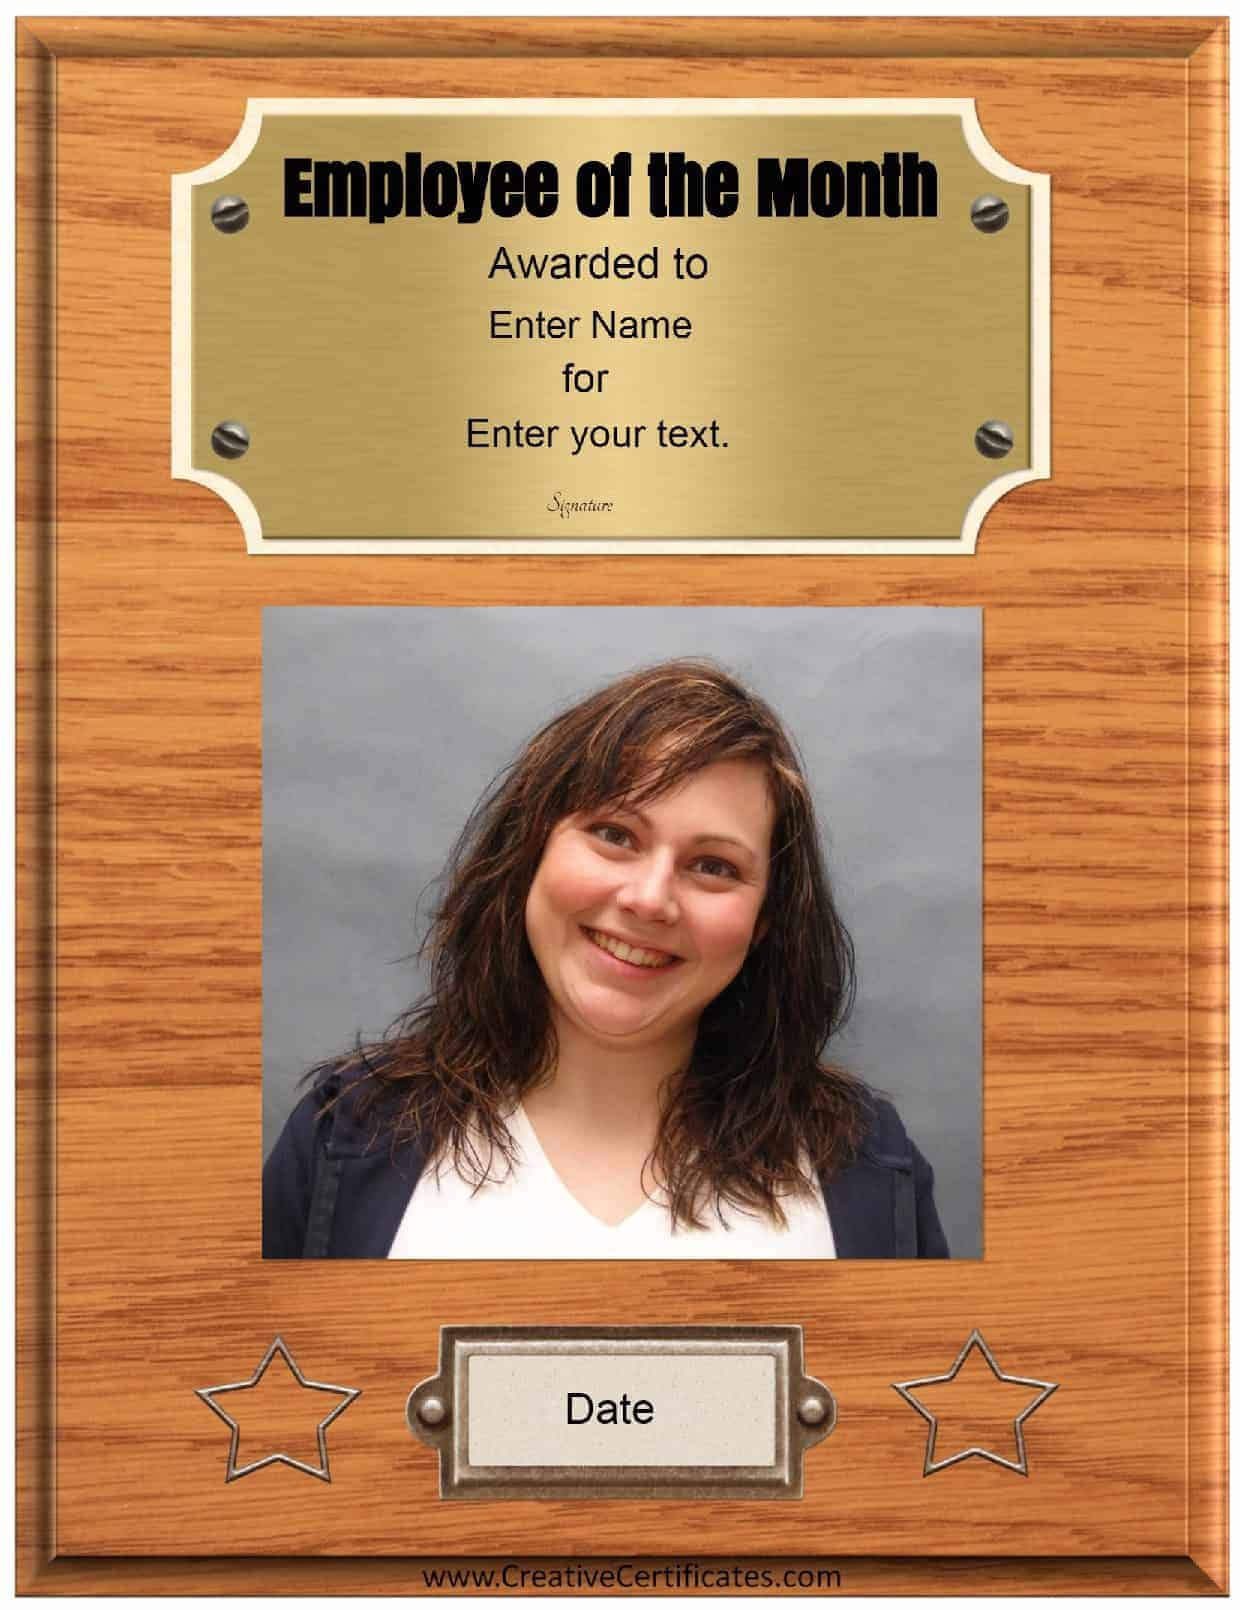 employee award template - gse.bookbinder.co, Modern powerpoint